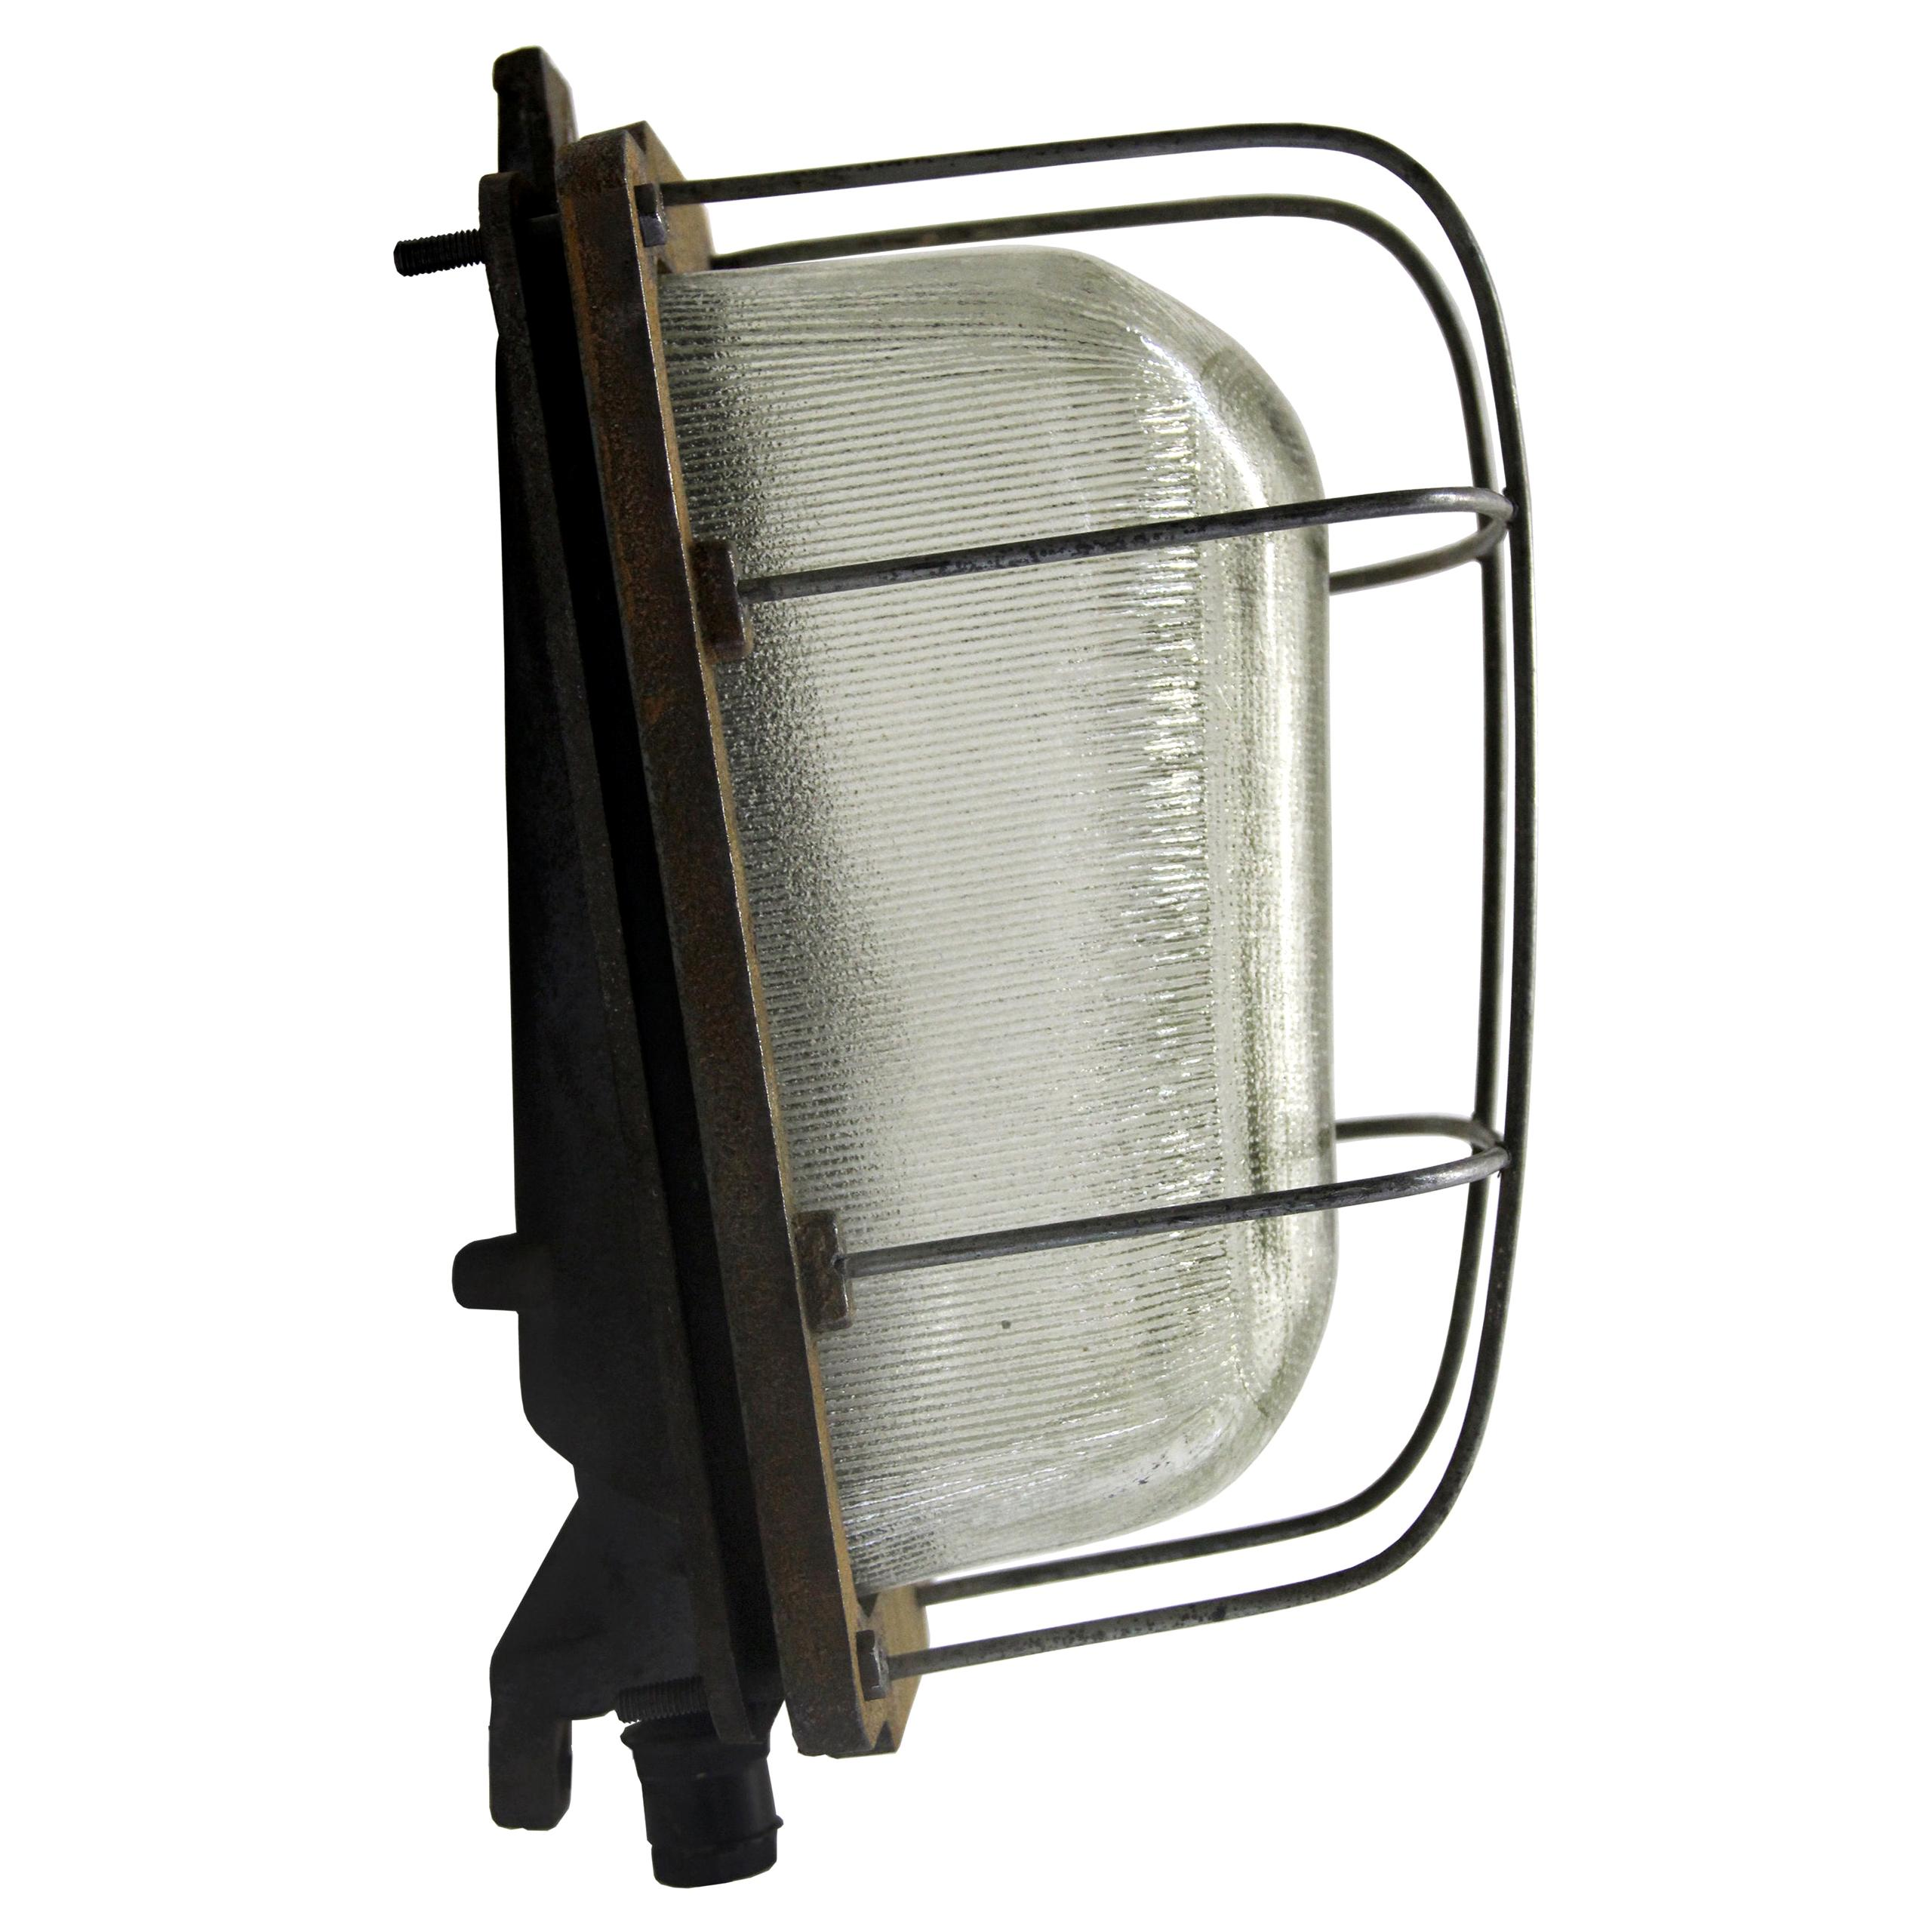 Gray Cast Iron Vintage Industrial Holophane Glass Wall Lamps Scones